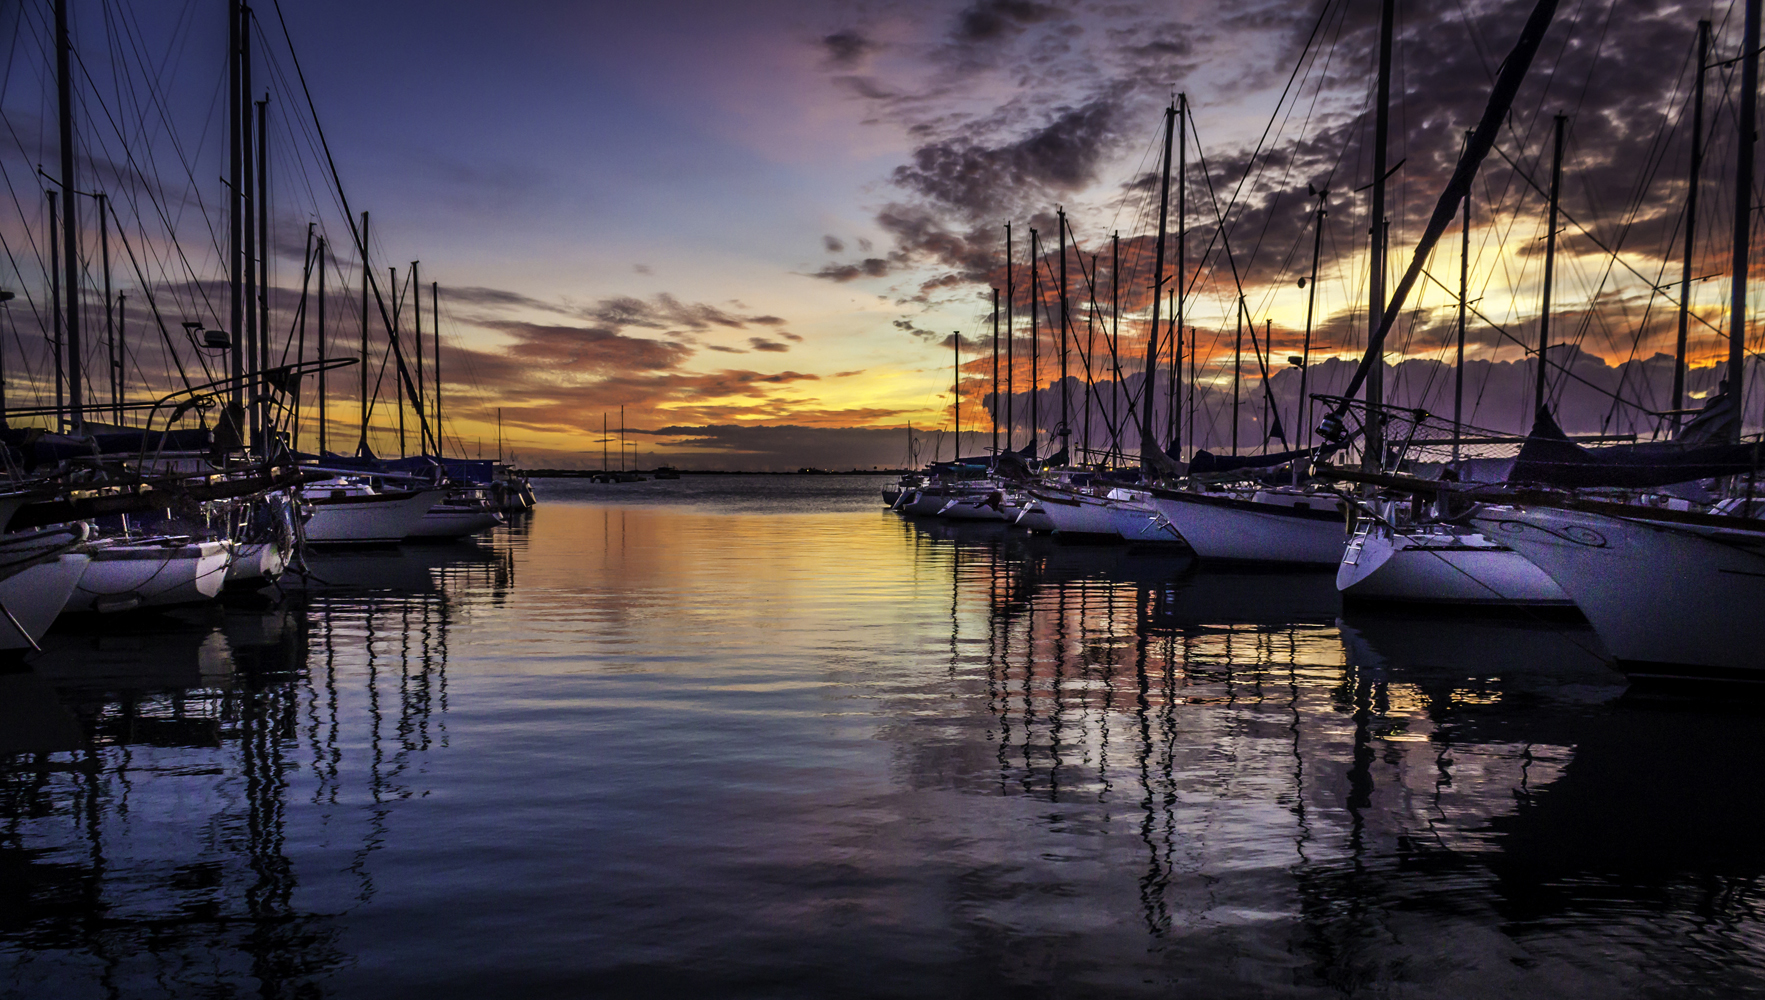 Sunset at Oahu Marina, Oahu, Hawaii